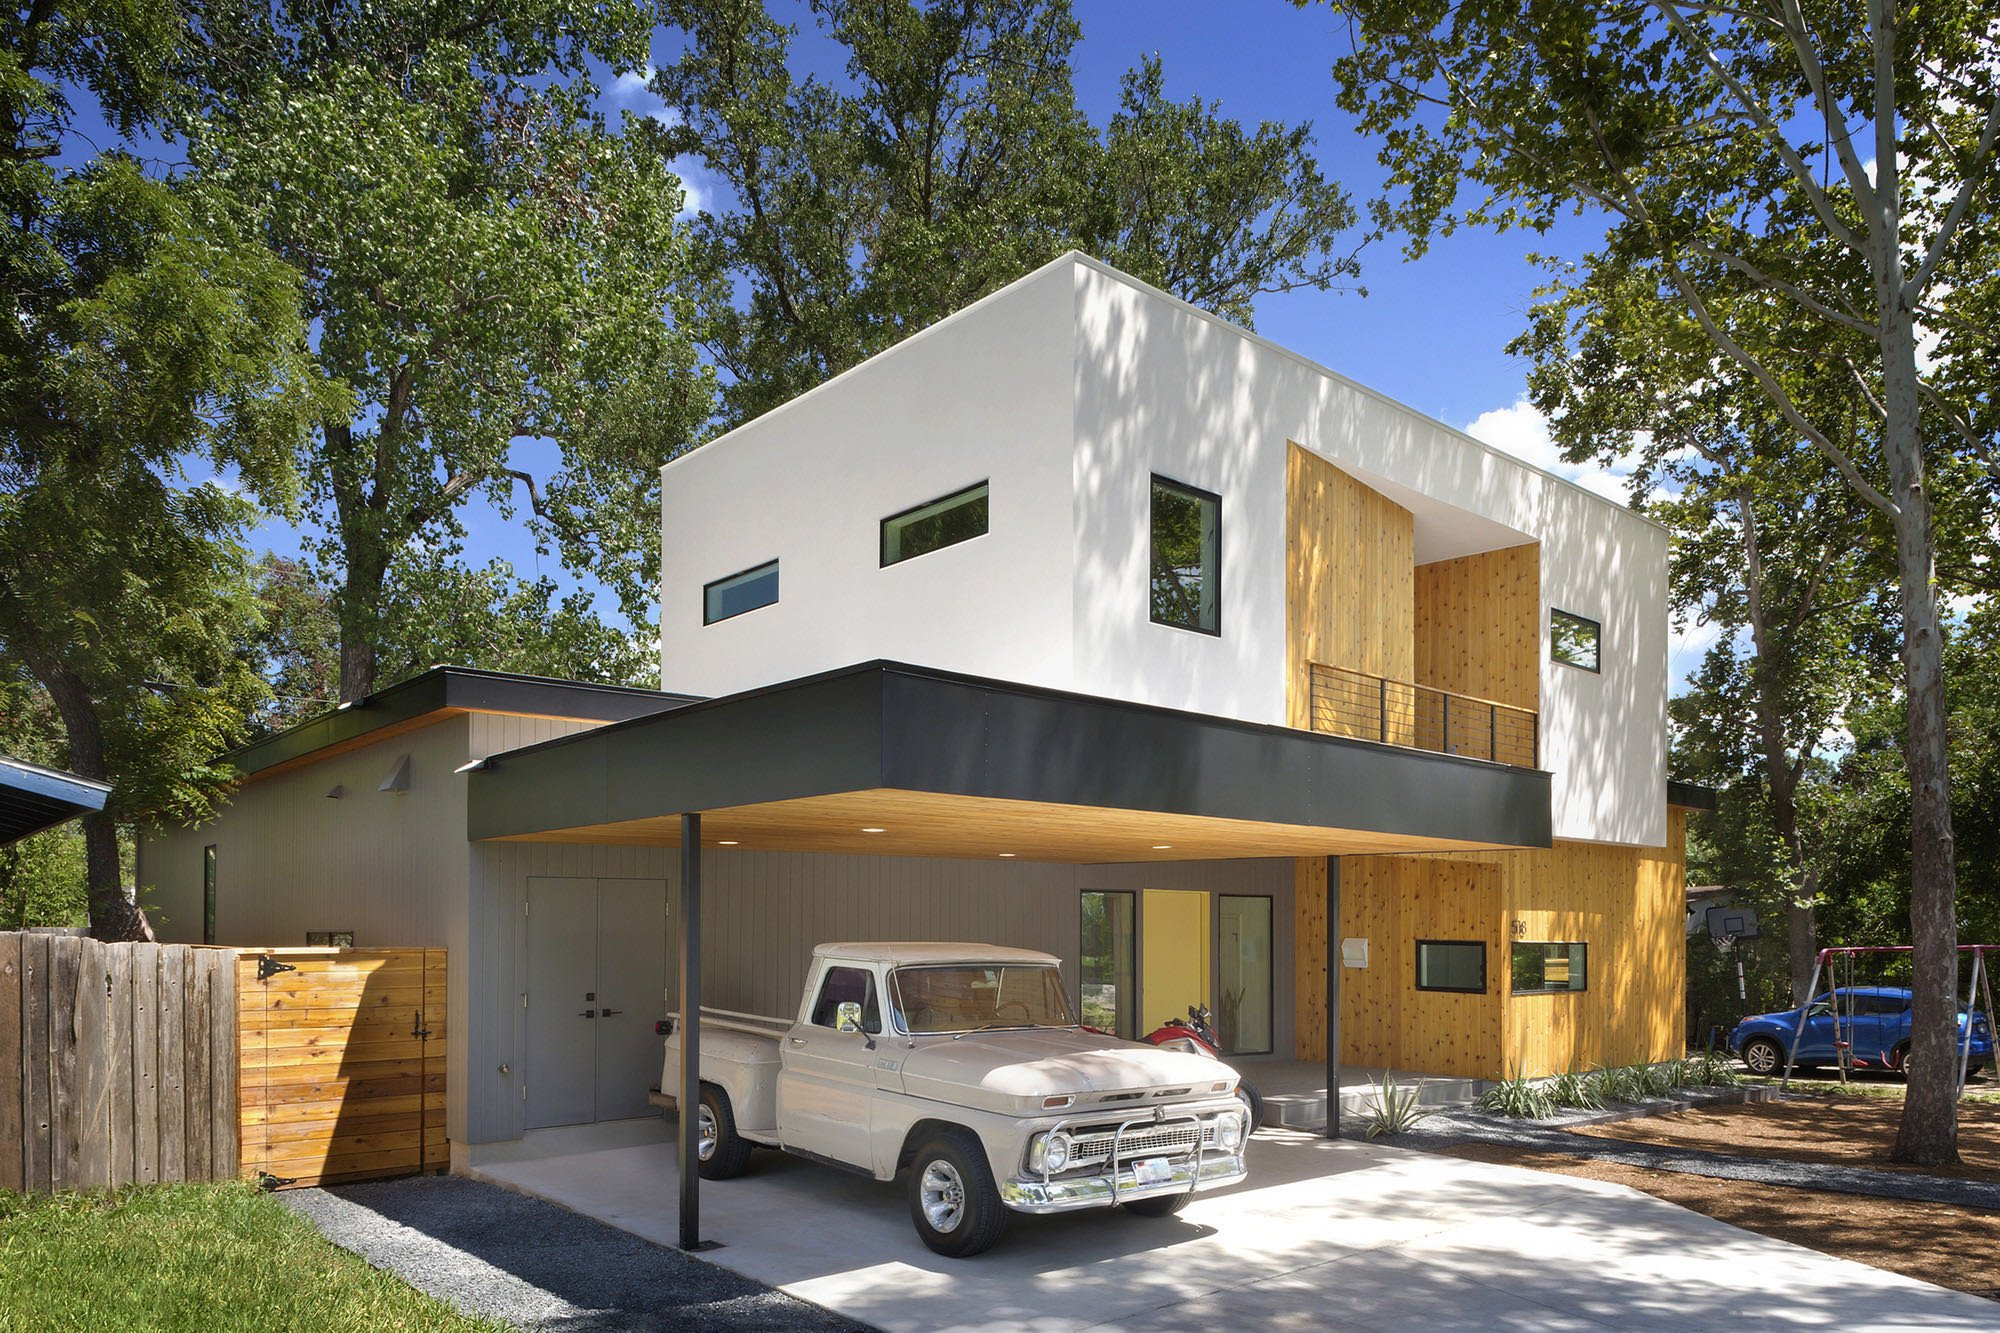 Austin modern tree house matt fajkus architecture carport